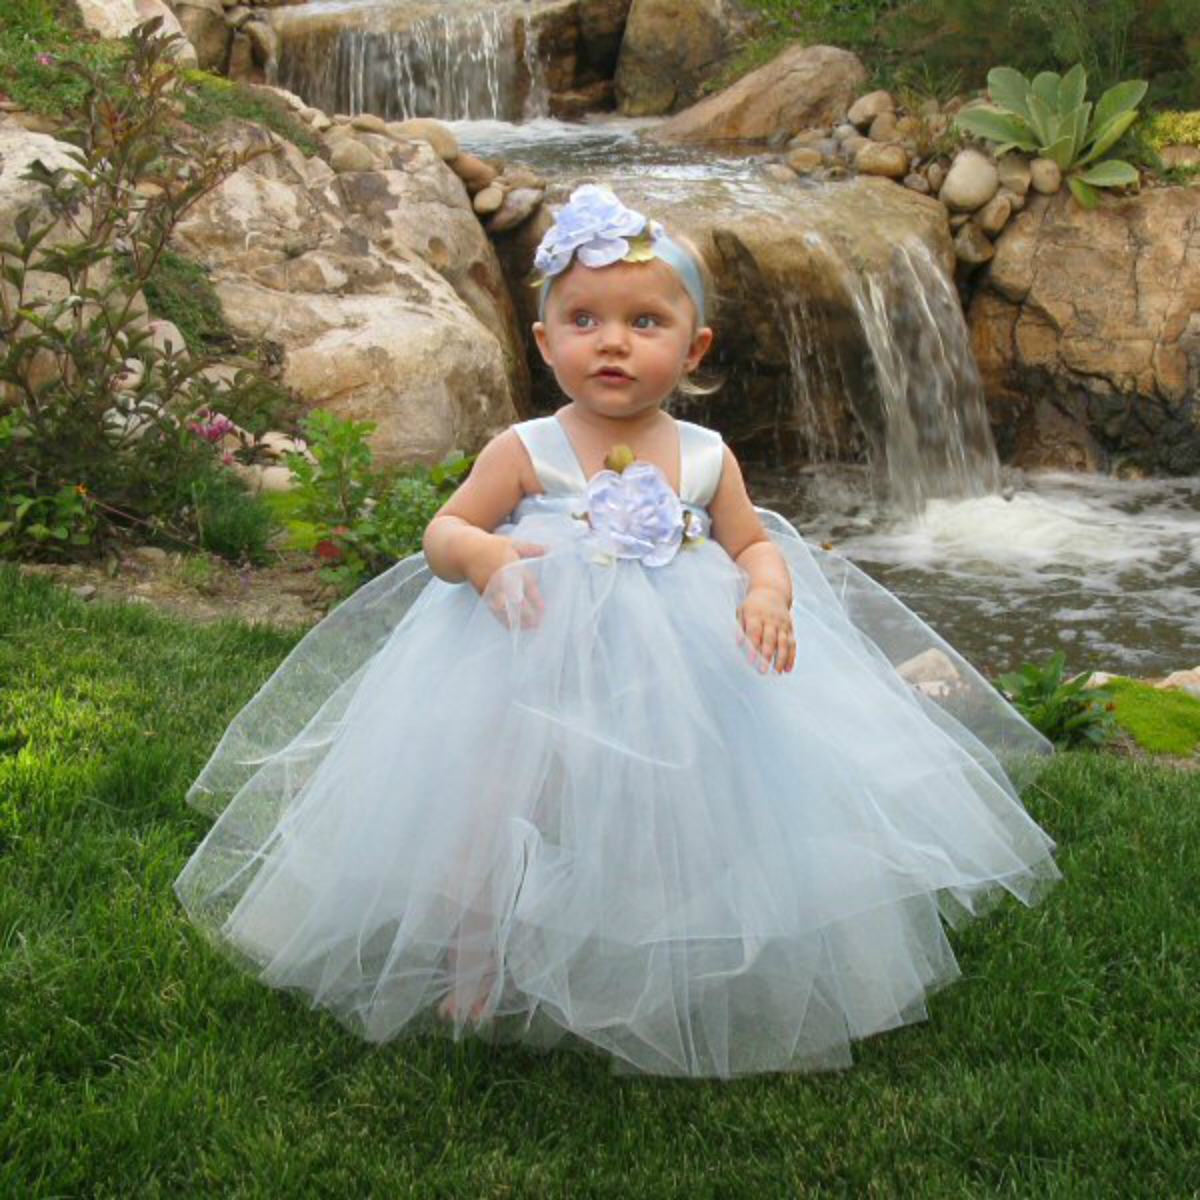 You searched for: baby tutu dresses! Etsy is the home to thousands of handmade, vintage, and one-of-a-kind products and gifts related to your search. No matter what you're looking for or where you are in the world, our global marketplace of sellers can help you find unique and affordable options. Let's get started!